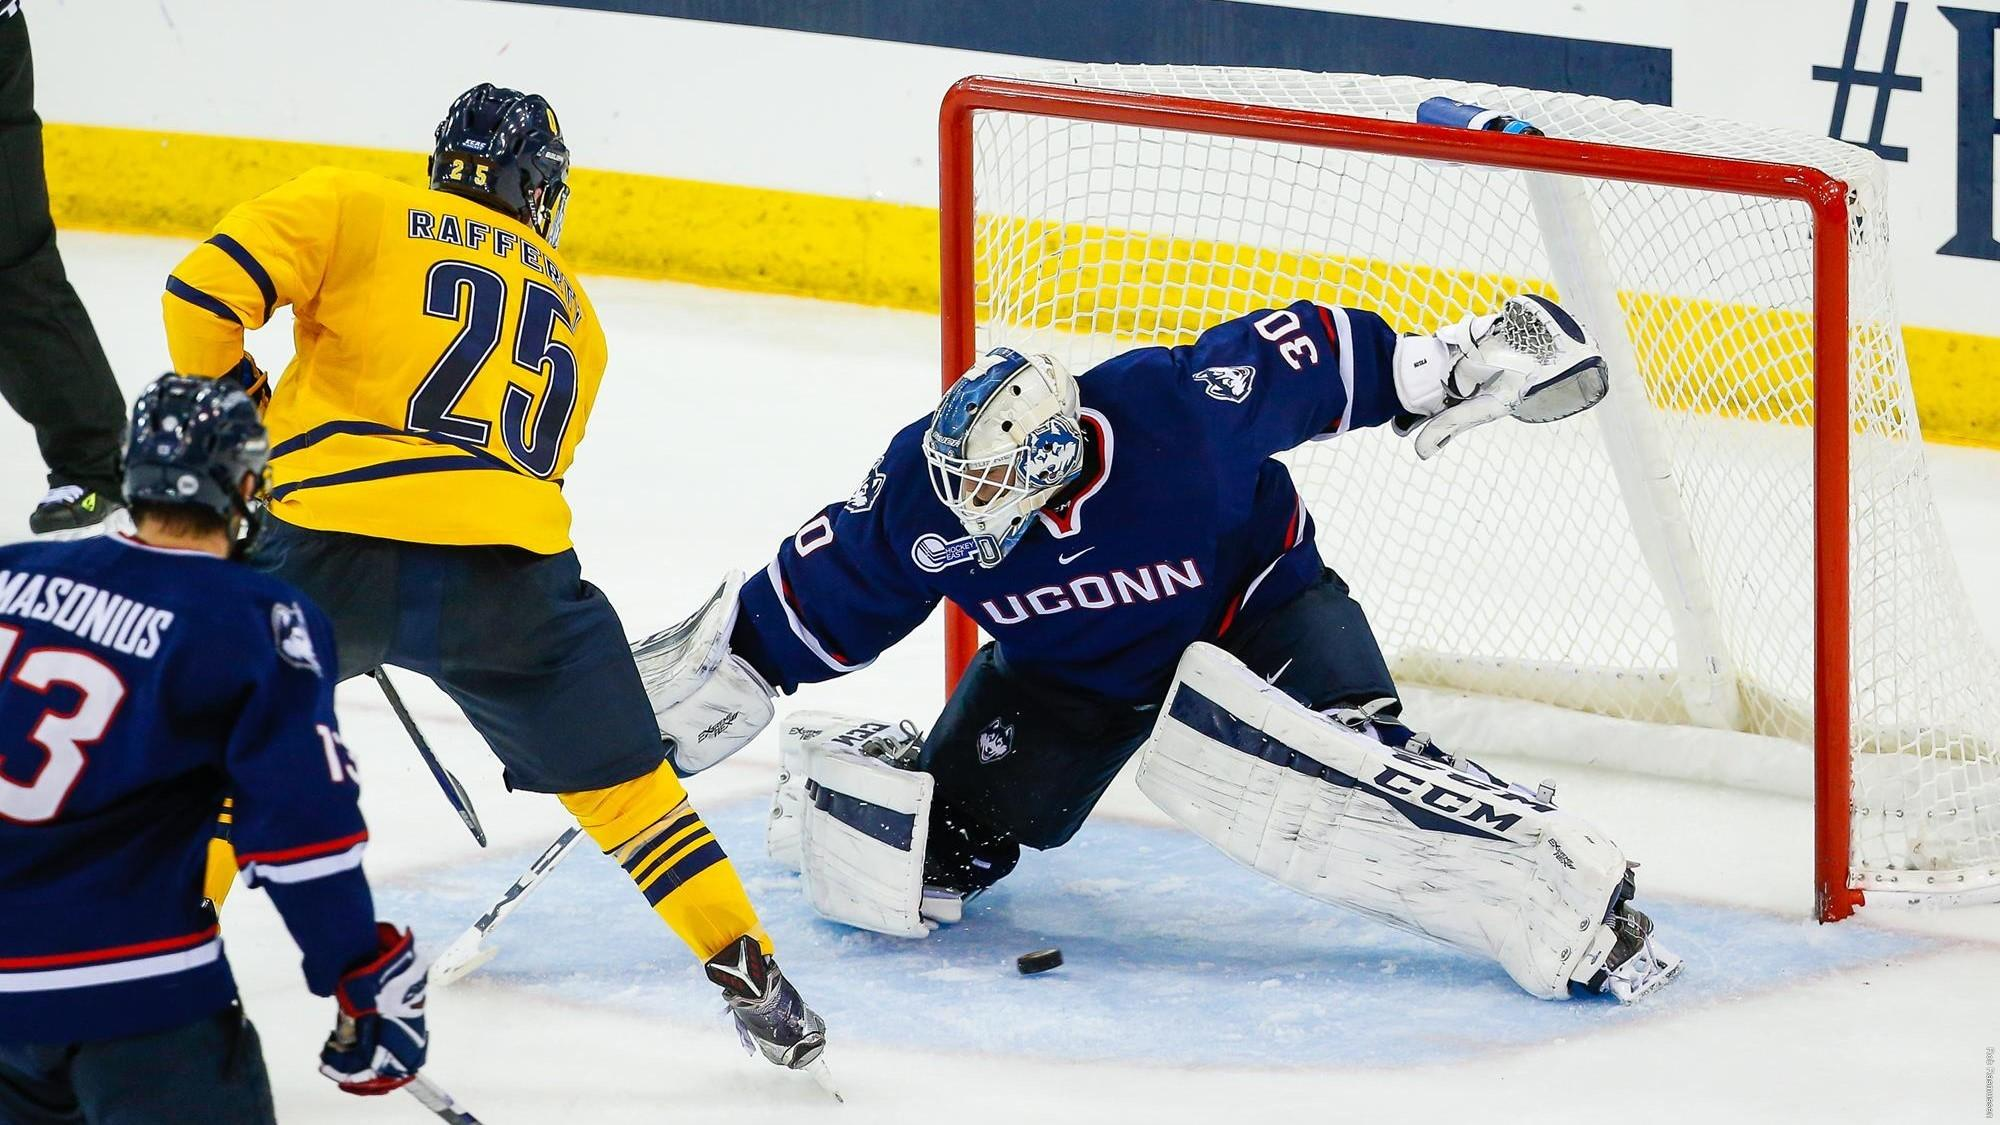 Quinnipiac depth on display in 5-2 routing of UConn